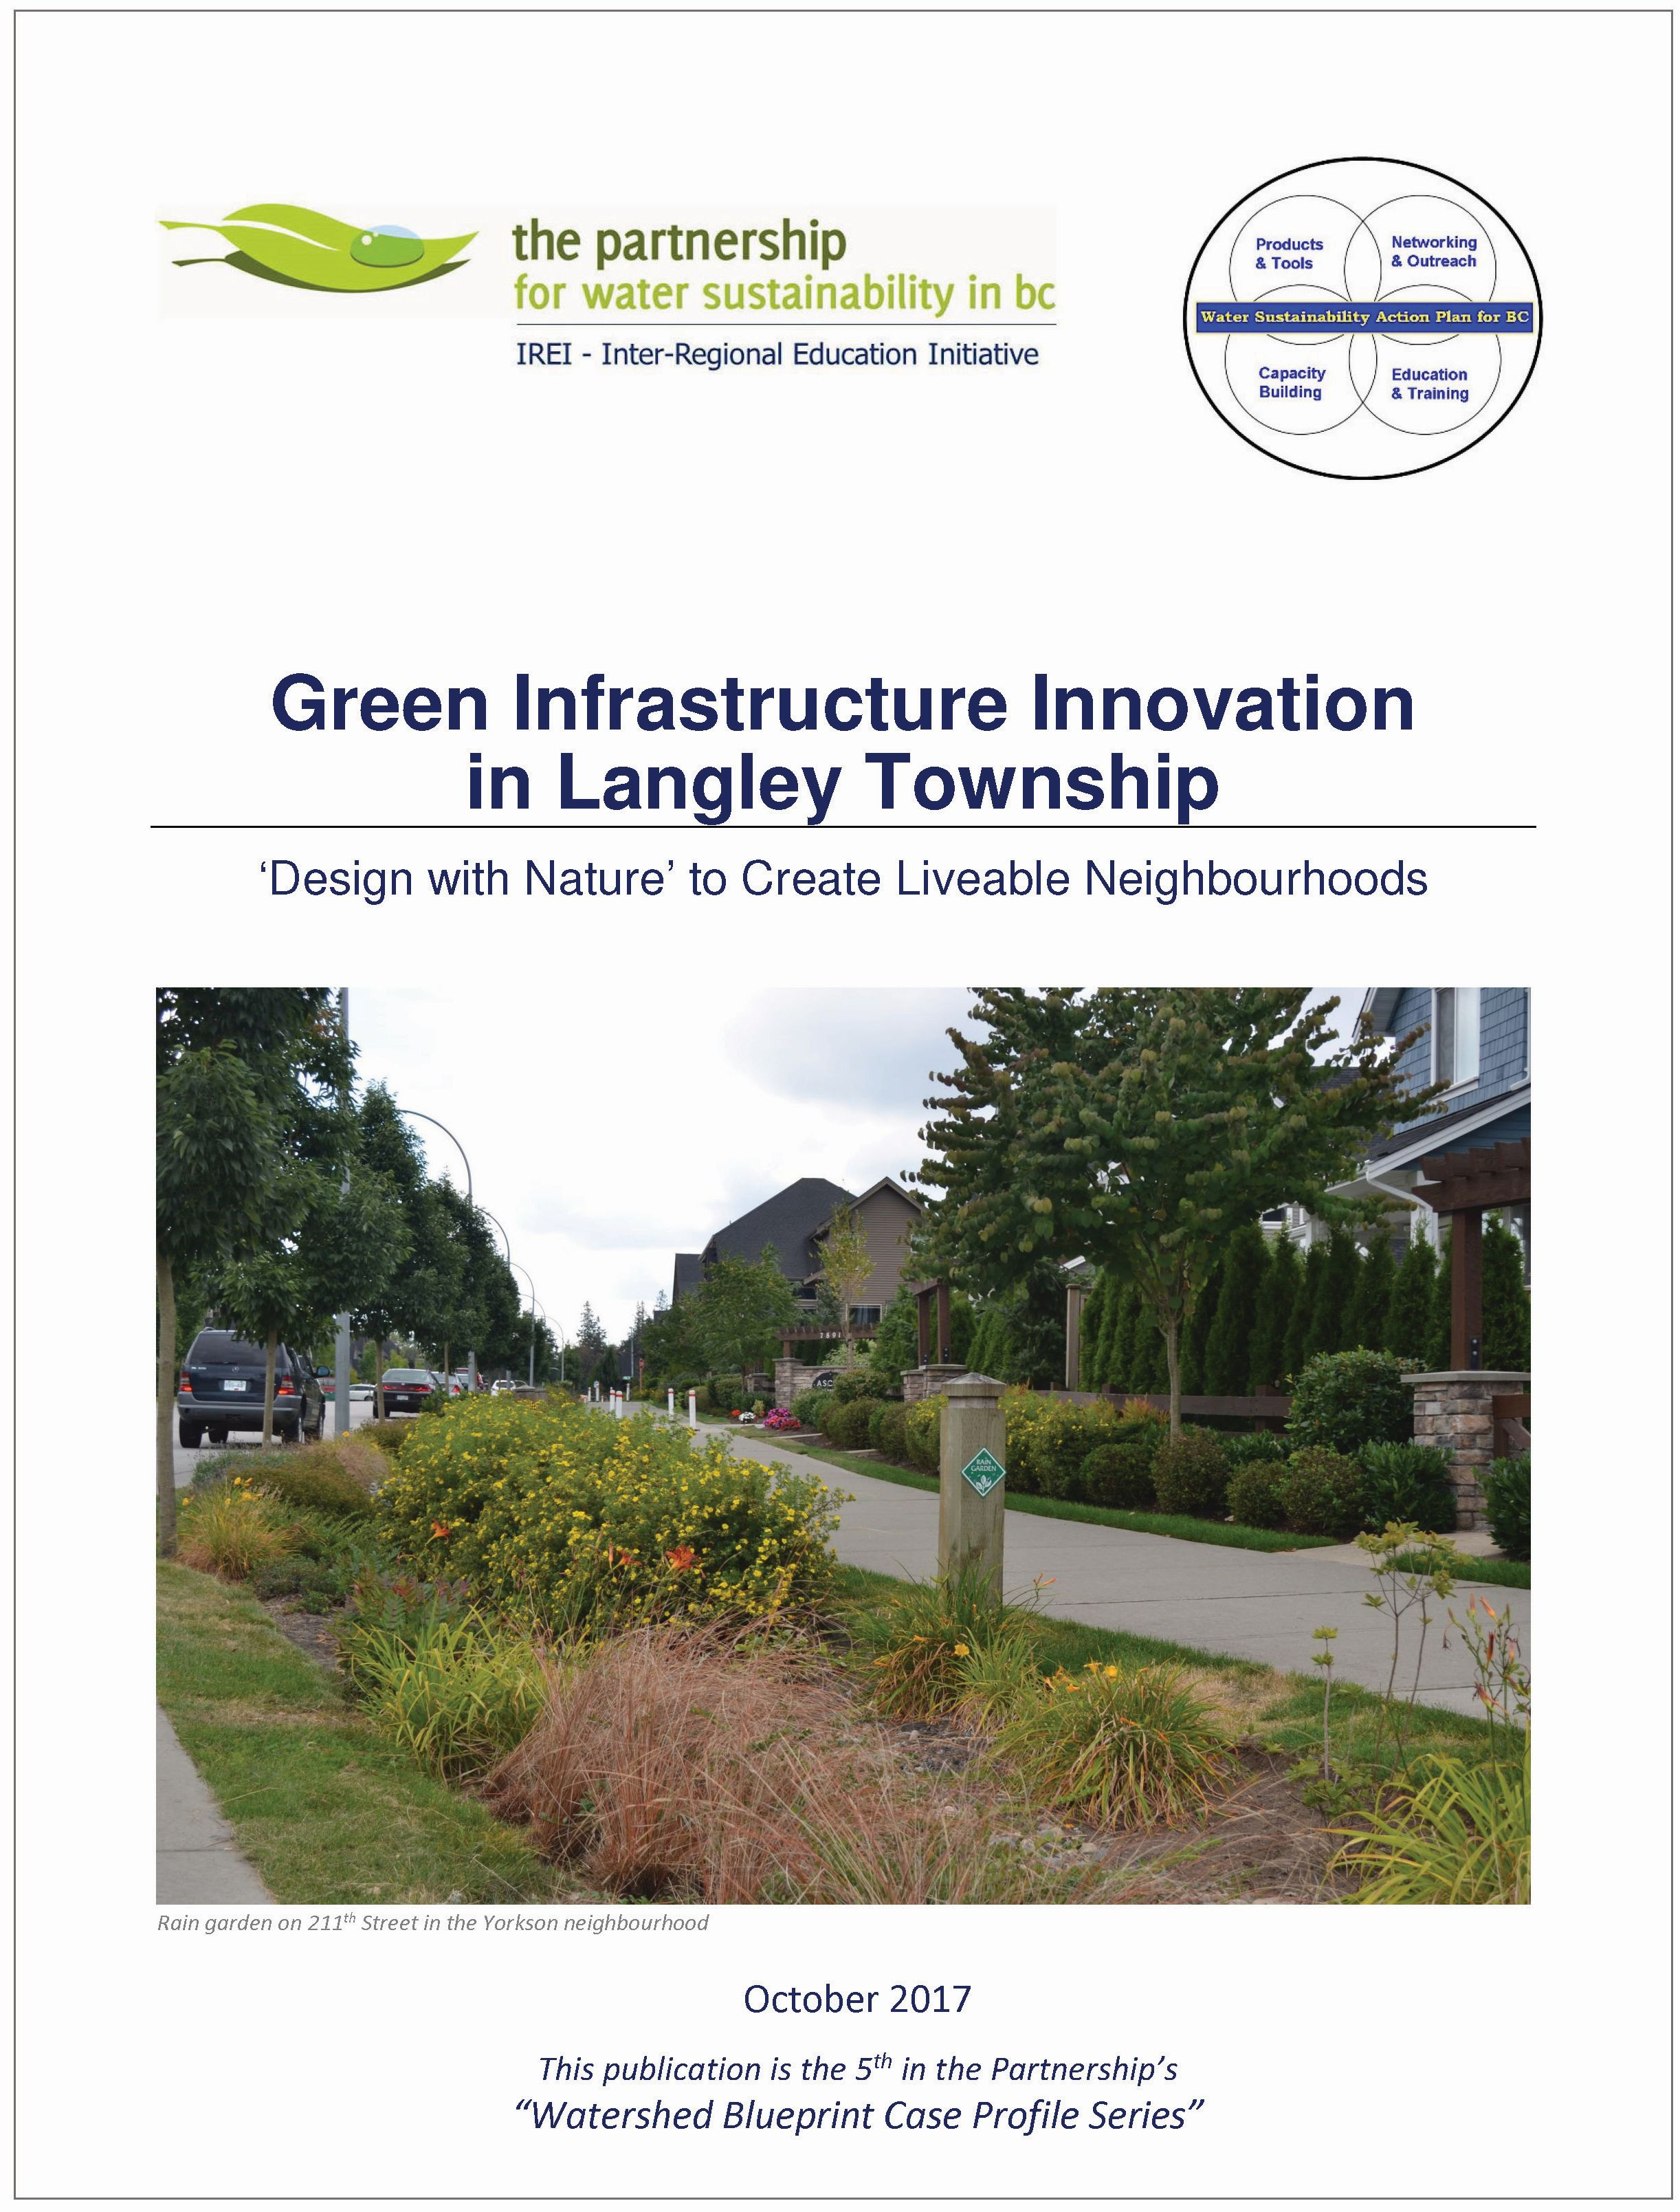 Langley_Green-Infrastructure-Innovation_Oct-2017_cover